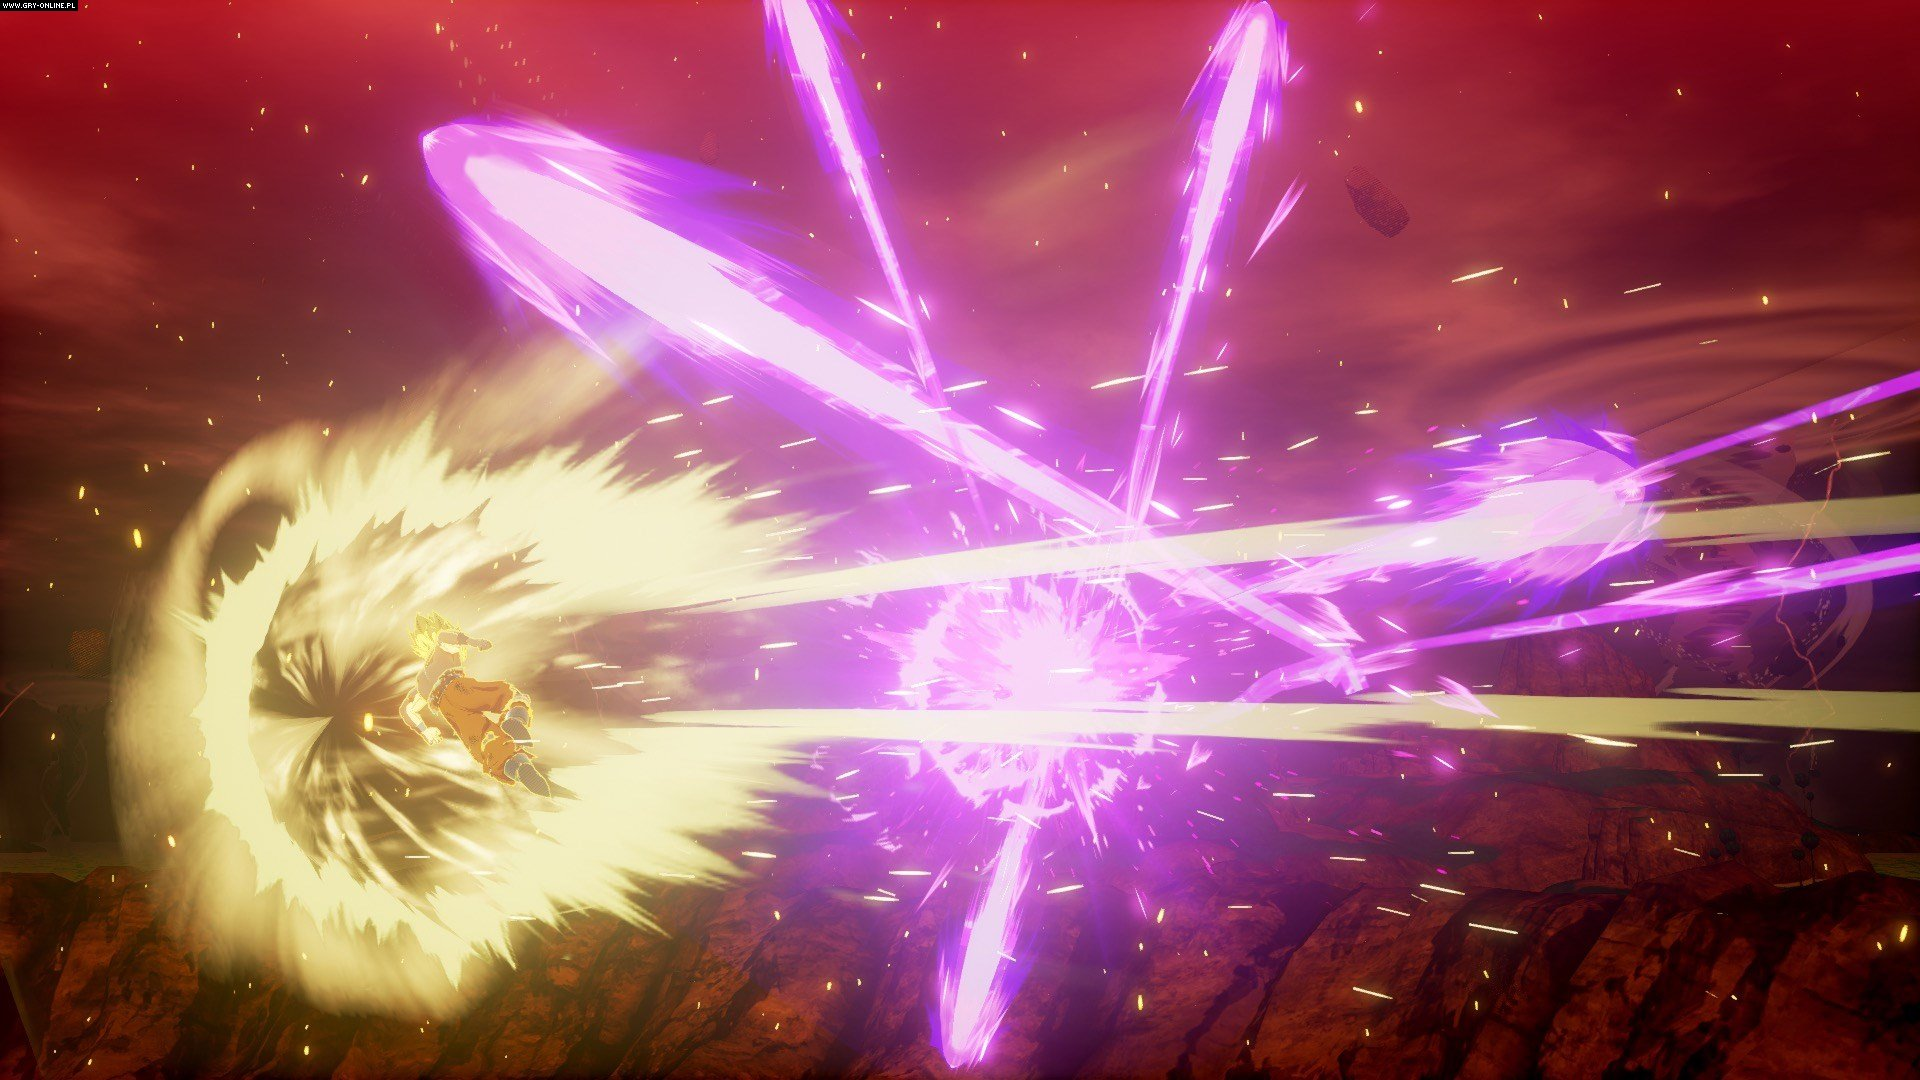 Dragon Ball Z: Kakarot PC, PS4, XONE Games Image 89/109, Cyberconnect2, Bandai Namco Entertainment